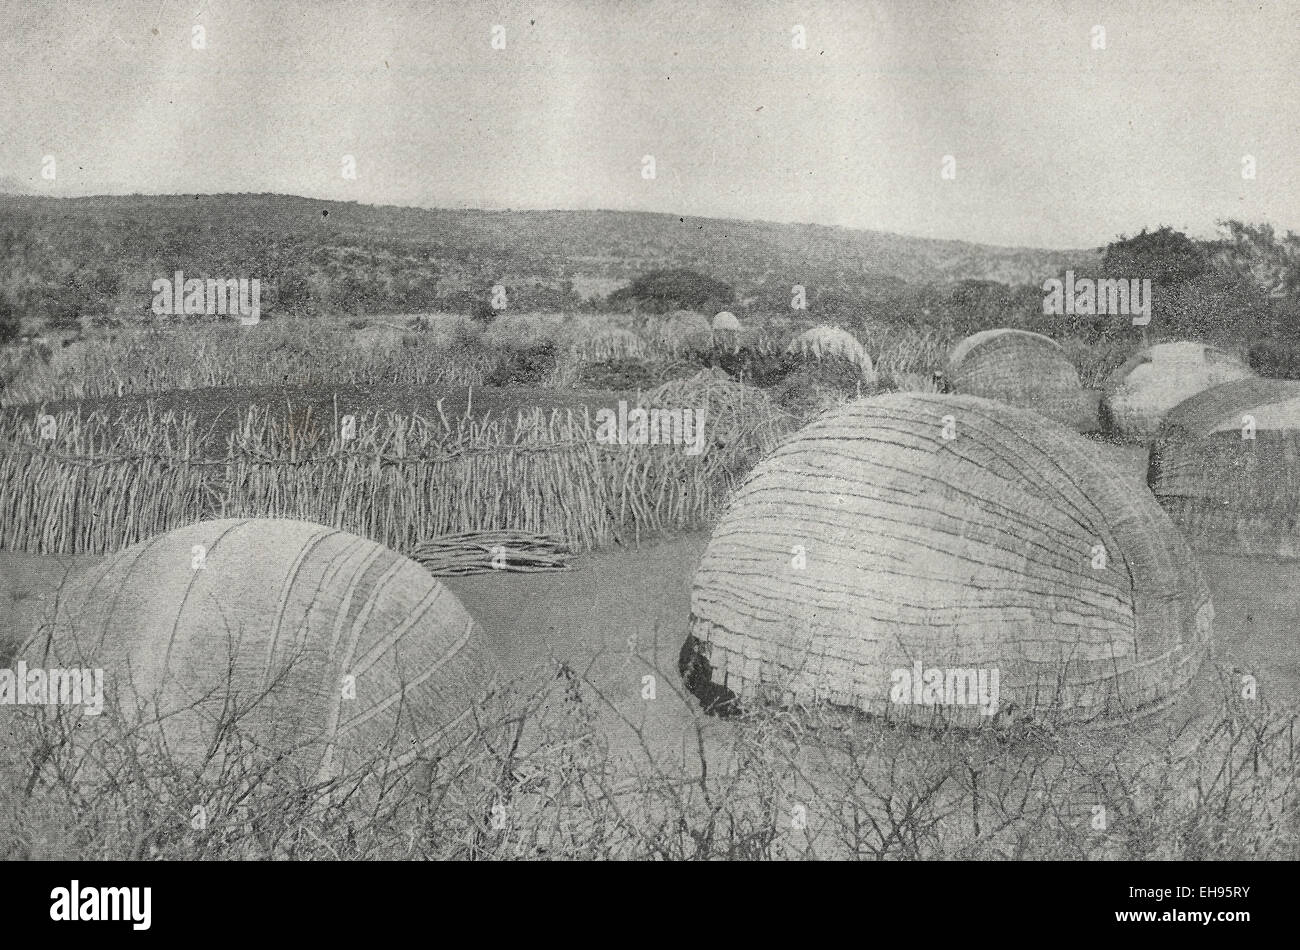 Zulu Kraal - This picture shows Zulu huts placed around the Kraal or cattle pen, circa 1898 - Stock Image